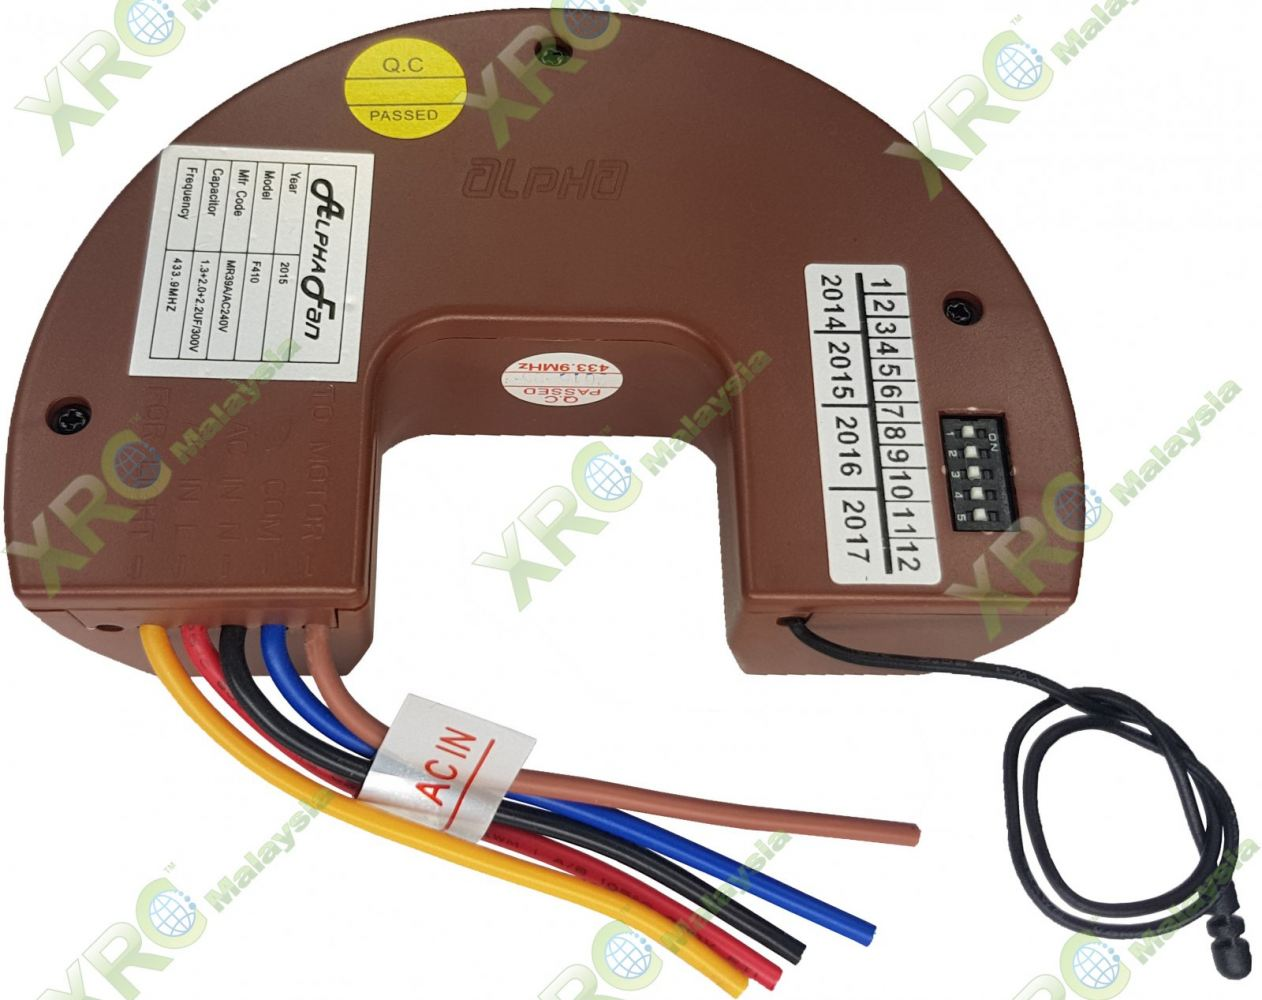 F410 Alpha Ceiling Fan Pcb Board Pcb Board Fan Spare Parts Johor Bahru Jb Malaysia Manufacturer Supplier Xet Sales Services Sdn Bhd